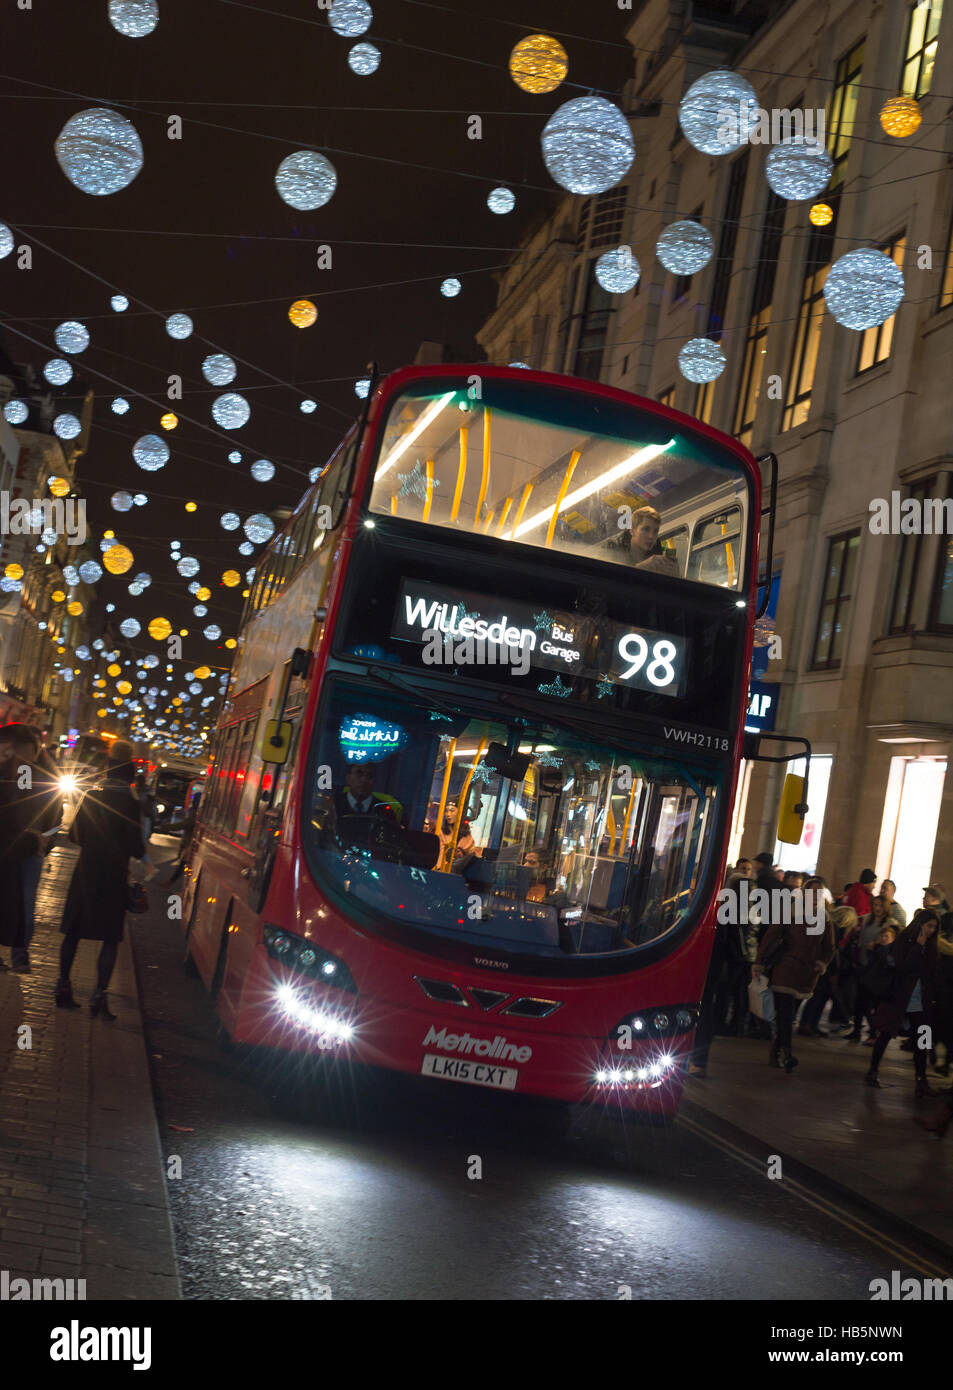 A 98 bus to Willesden navigates busy Oxford Street, London, during December's Christmas shopping spree. - Stock Image